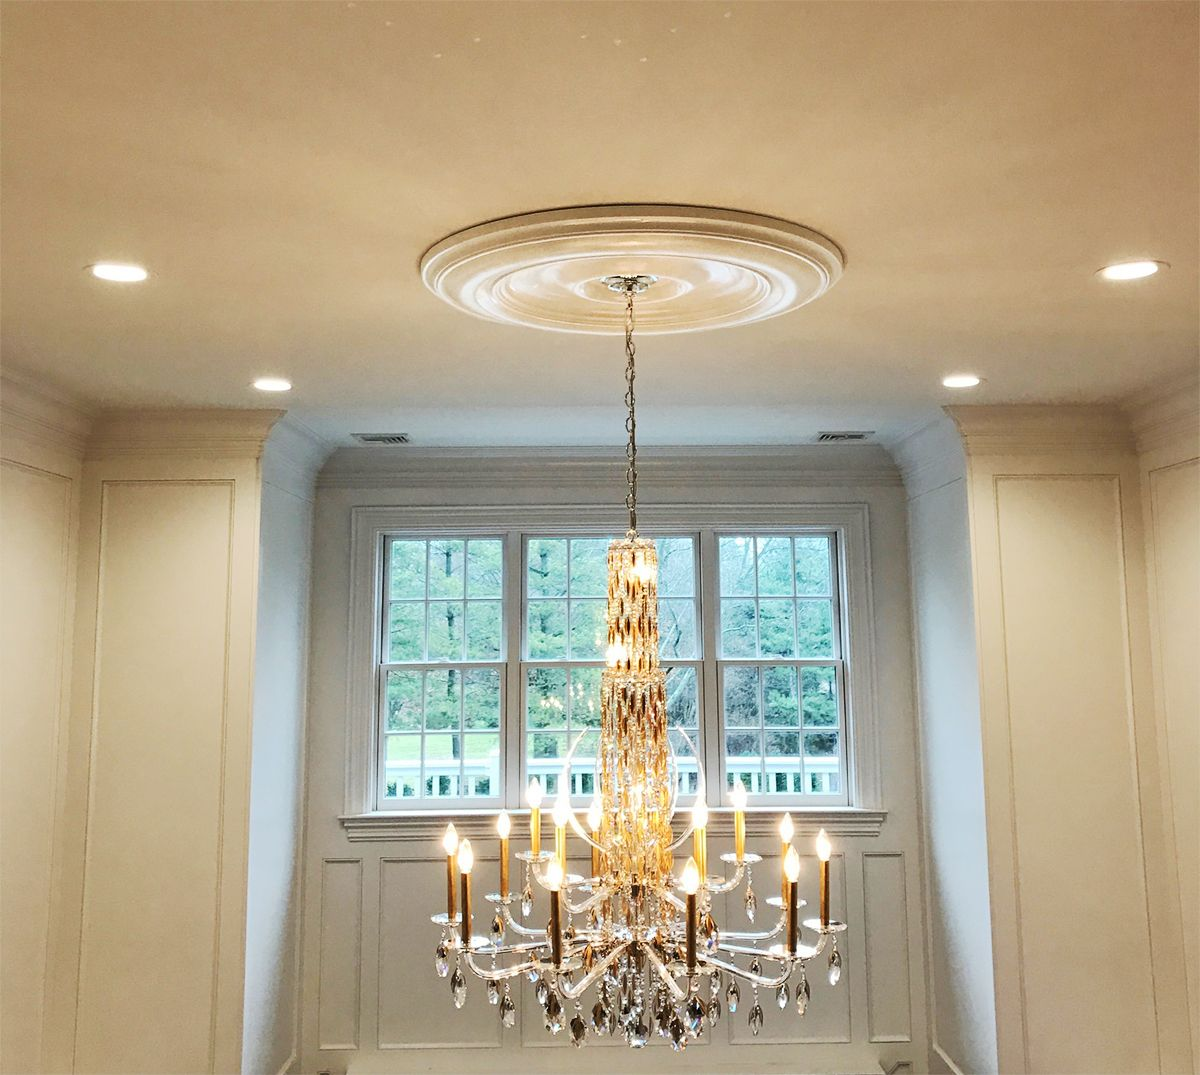 lighting reviews millwork ekena ceiling medallion wayfair attica ca pdp